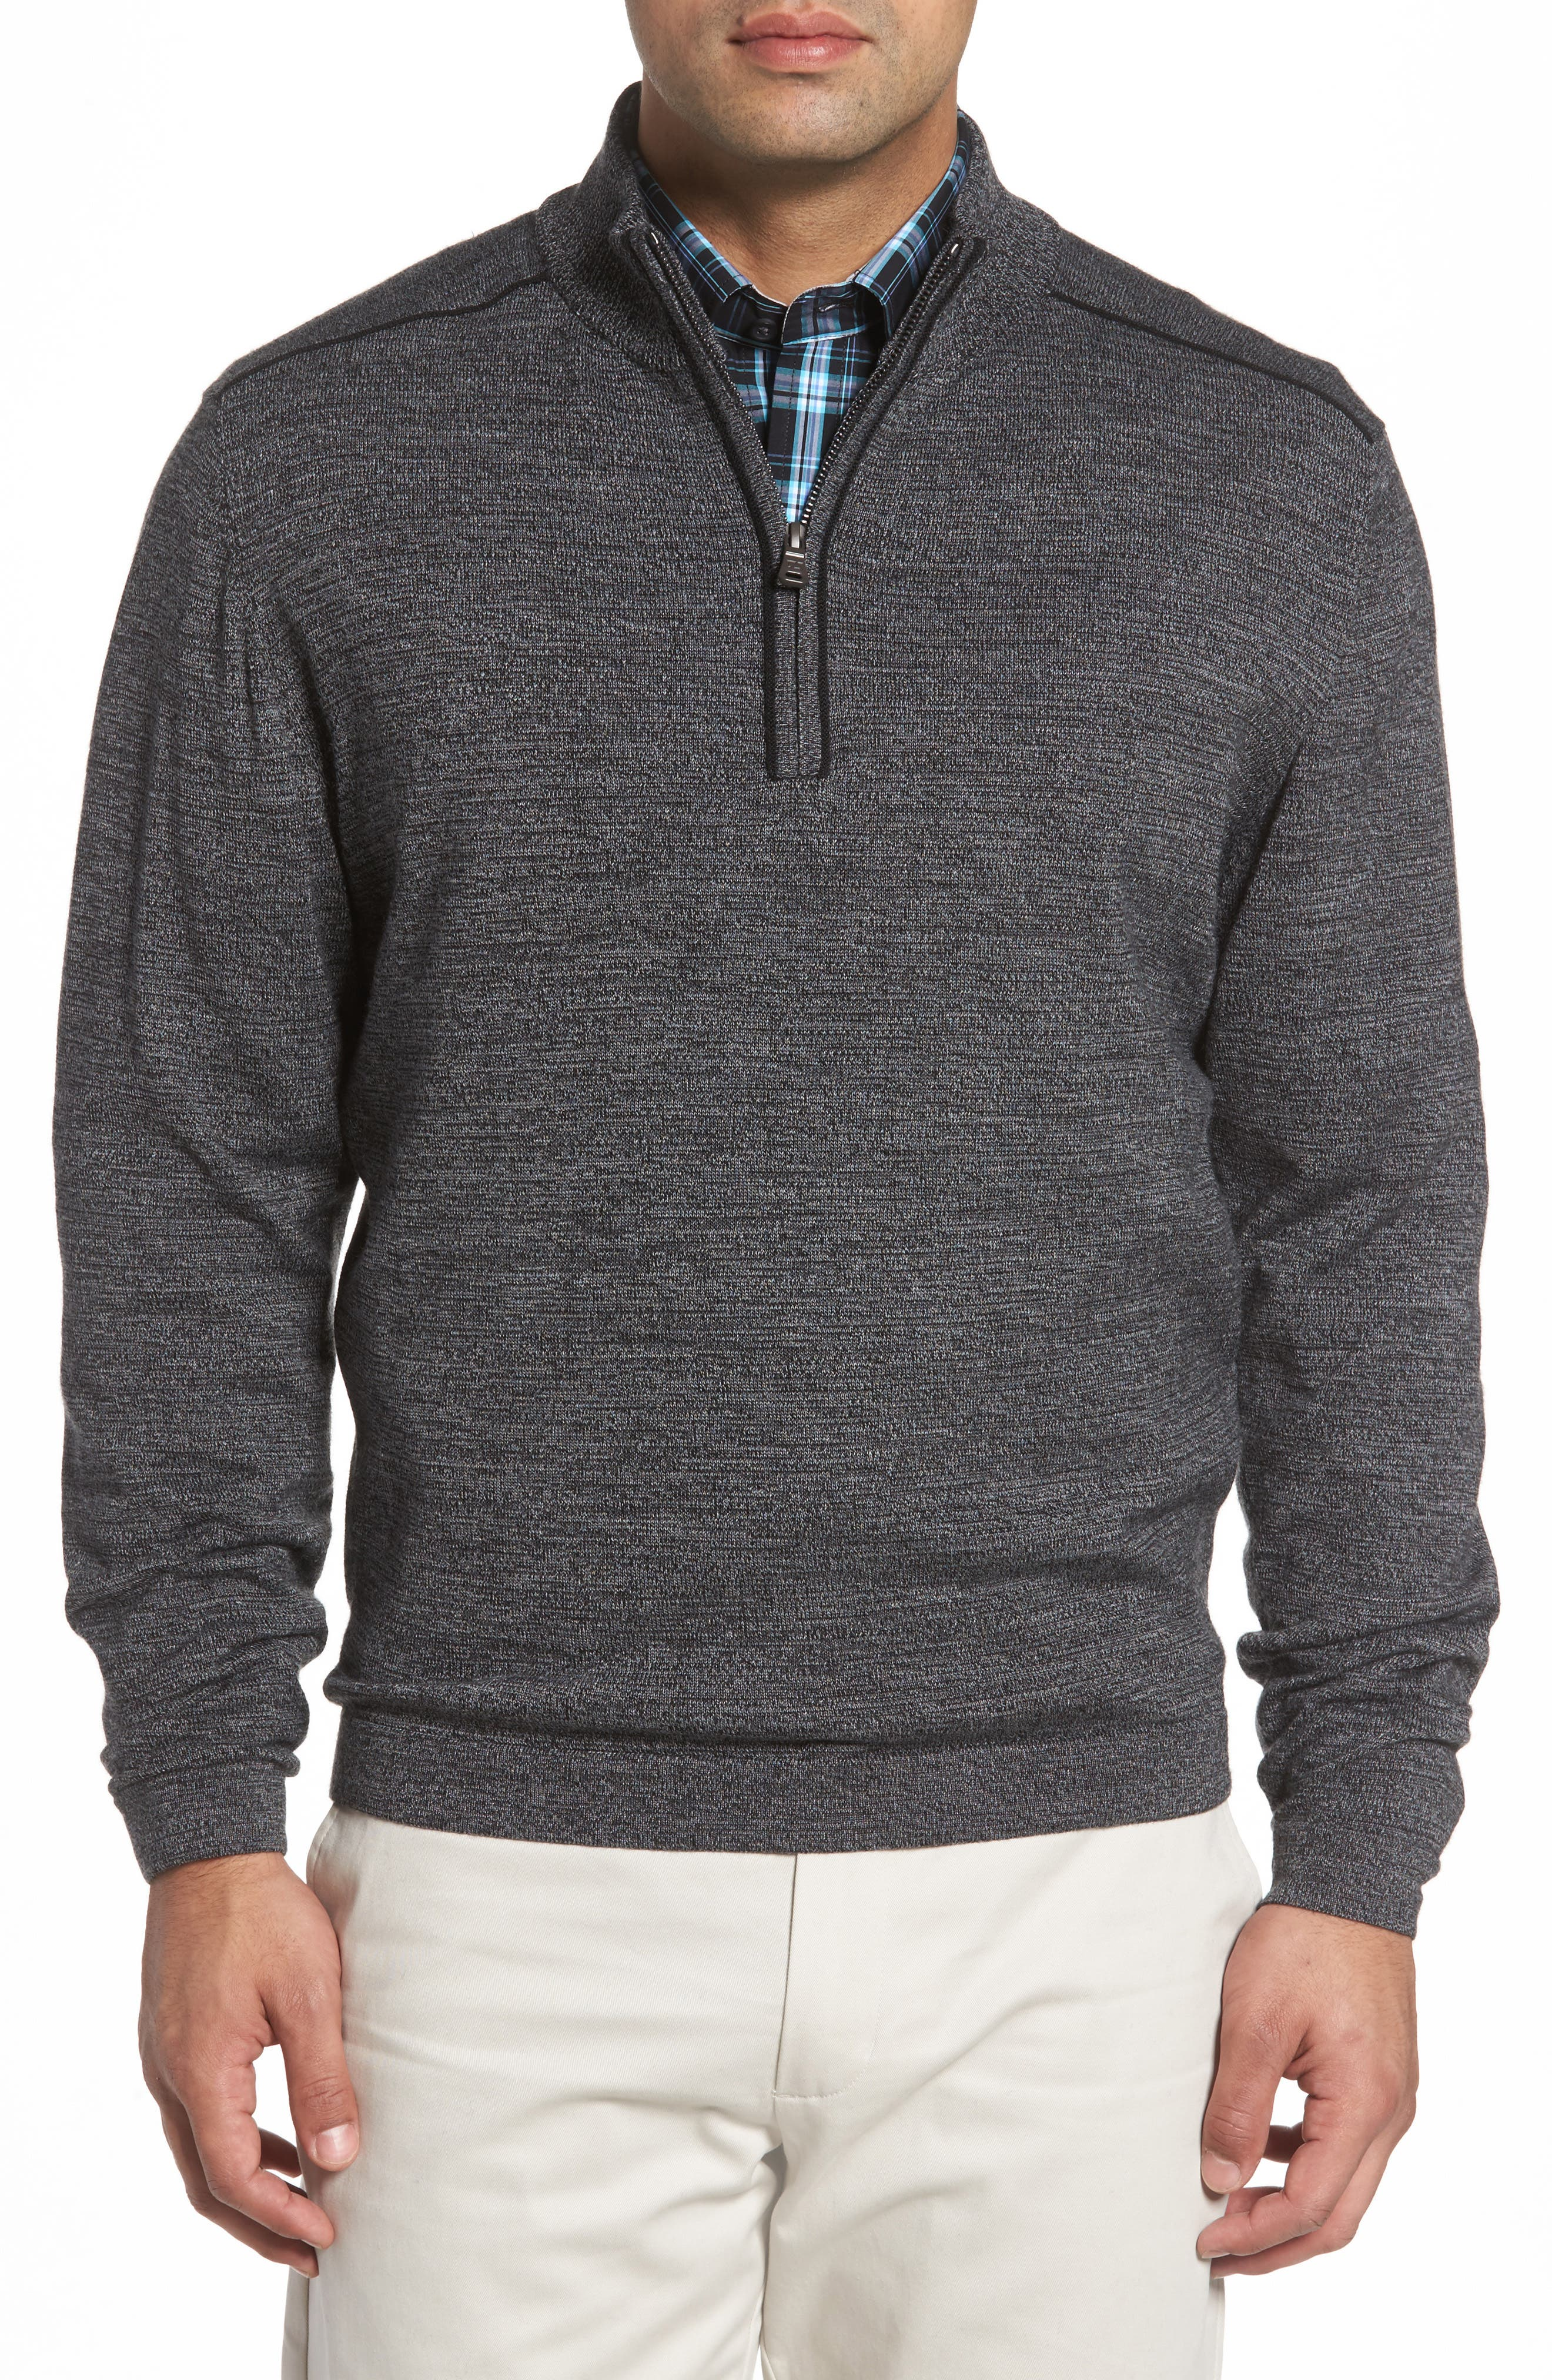 Cutter & Buck Henry Quarter Zip Wool Blend Pullover